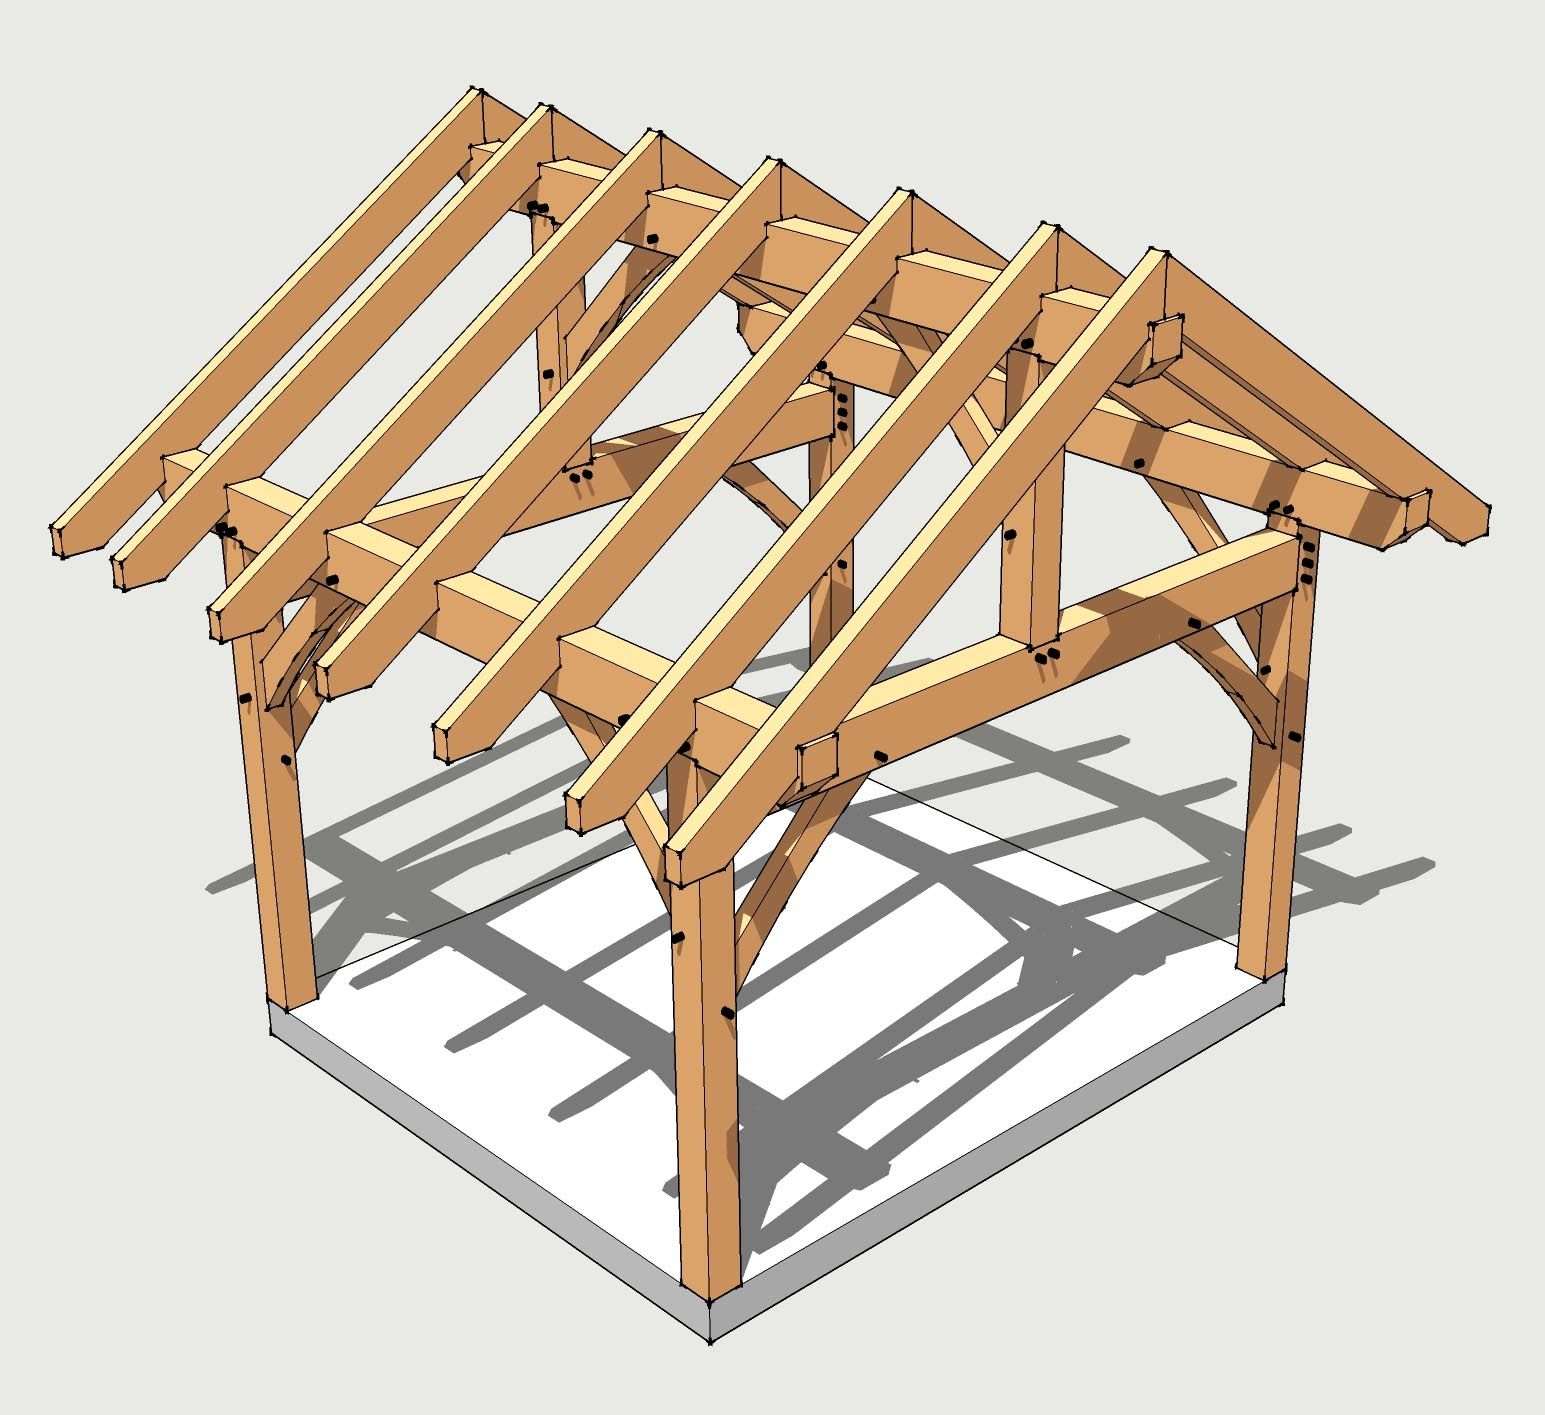 Square gazebo plans 12x12 pergola pinterest gazebo for Average cost to build a pavilion